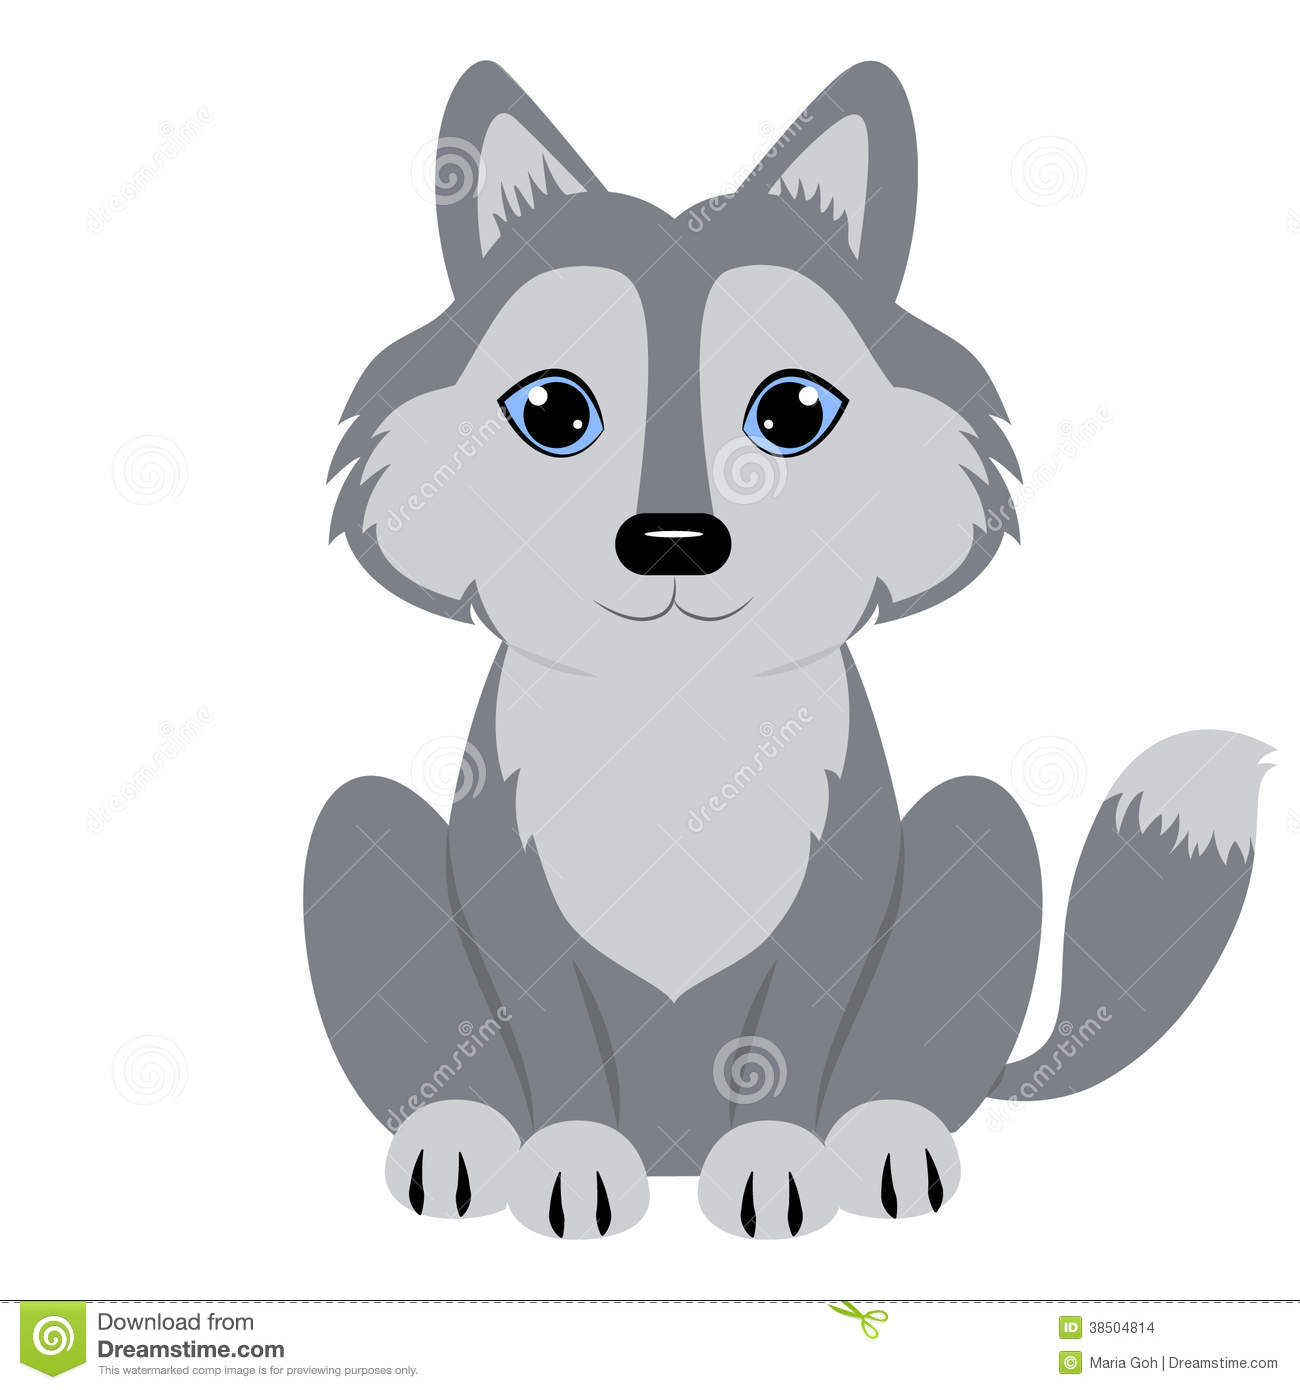 Werewolf clipart animated Gray Wolf collab Free Clipart